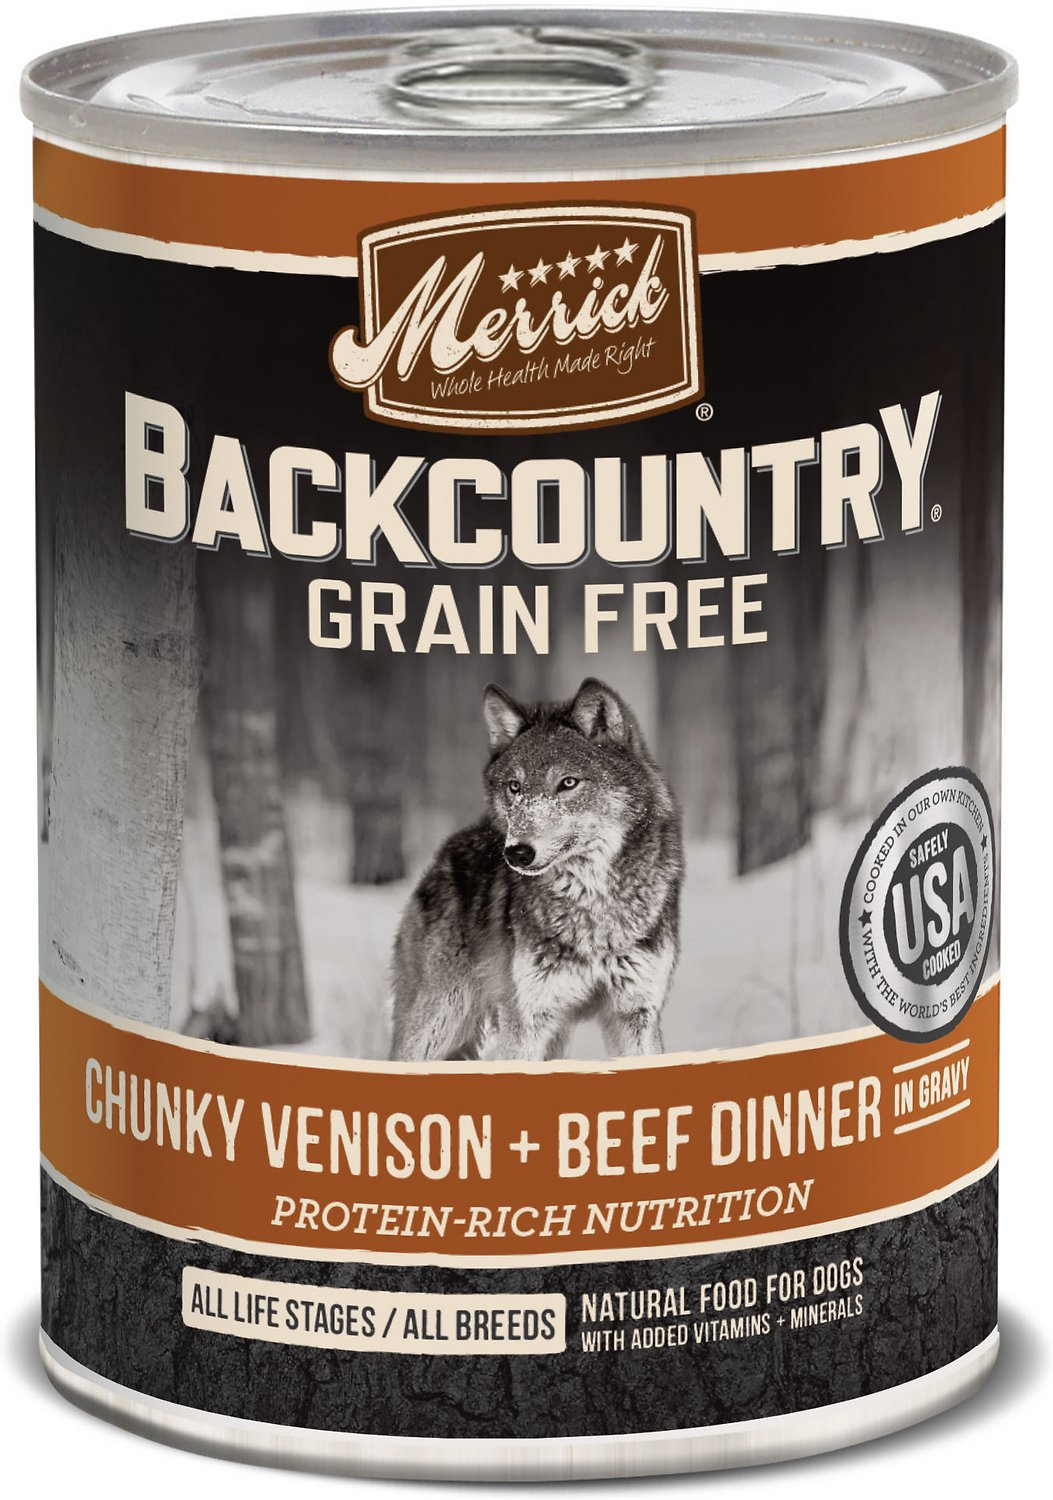 Merrick Backcountry Grain-Free Chunky Venison & Beef Dinner in Gravy Canned Dog Food Image